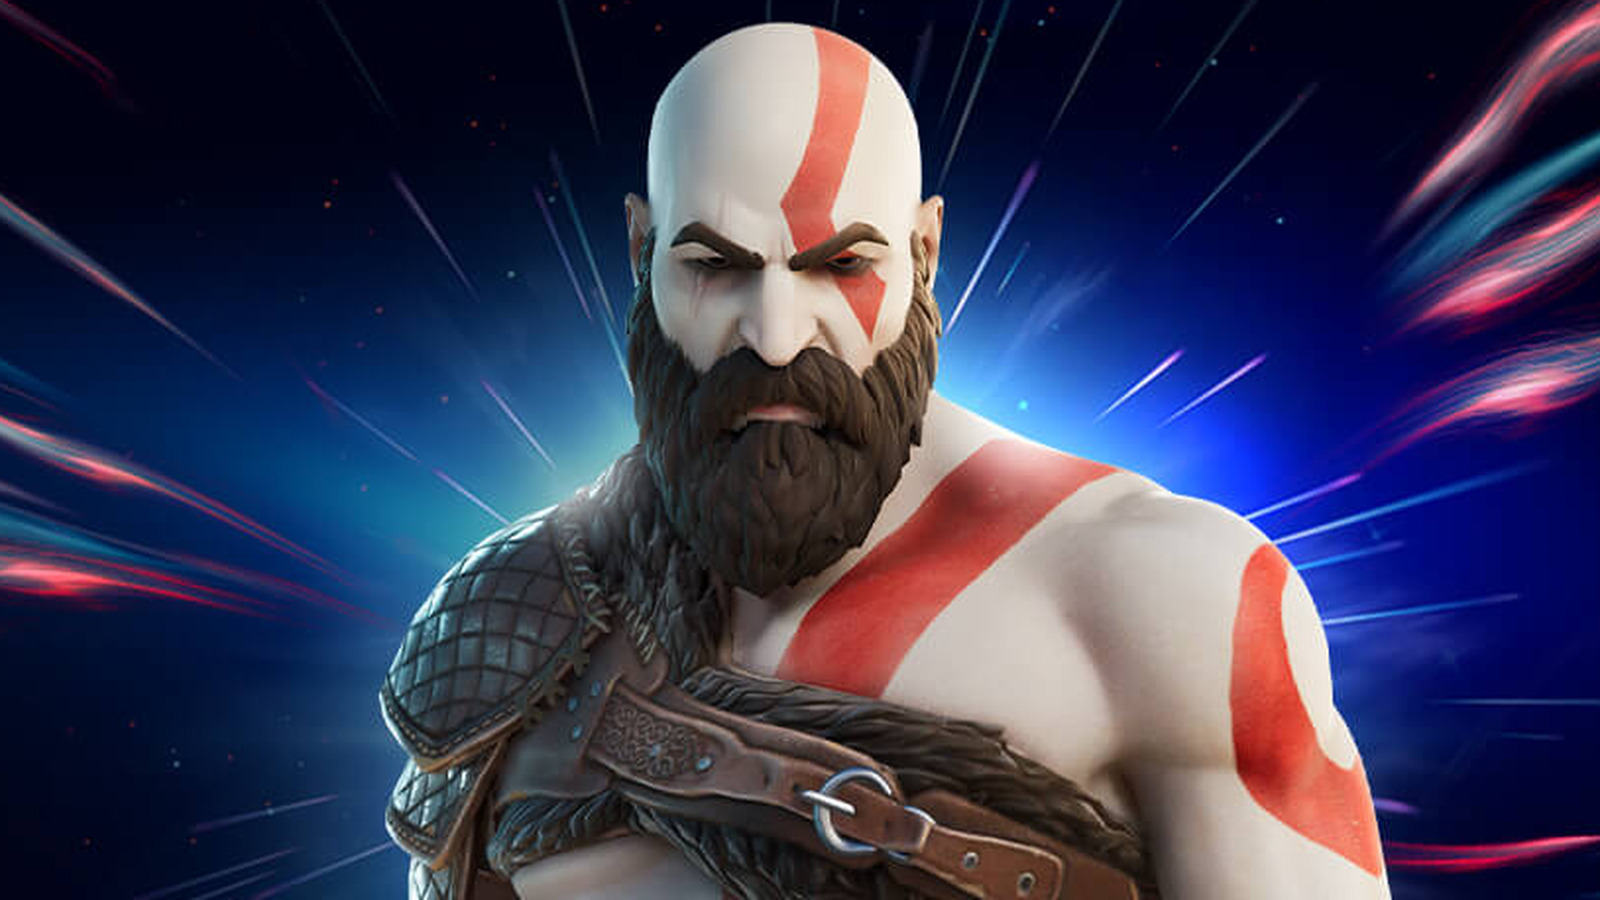 How To Get The Kratos Skin In Fortnite Season 5 The new crowning skin of fortnite's season five battle pass appears to be a combination of god of war's kratos and marvel's thor. kratos skin in fortnite season 5